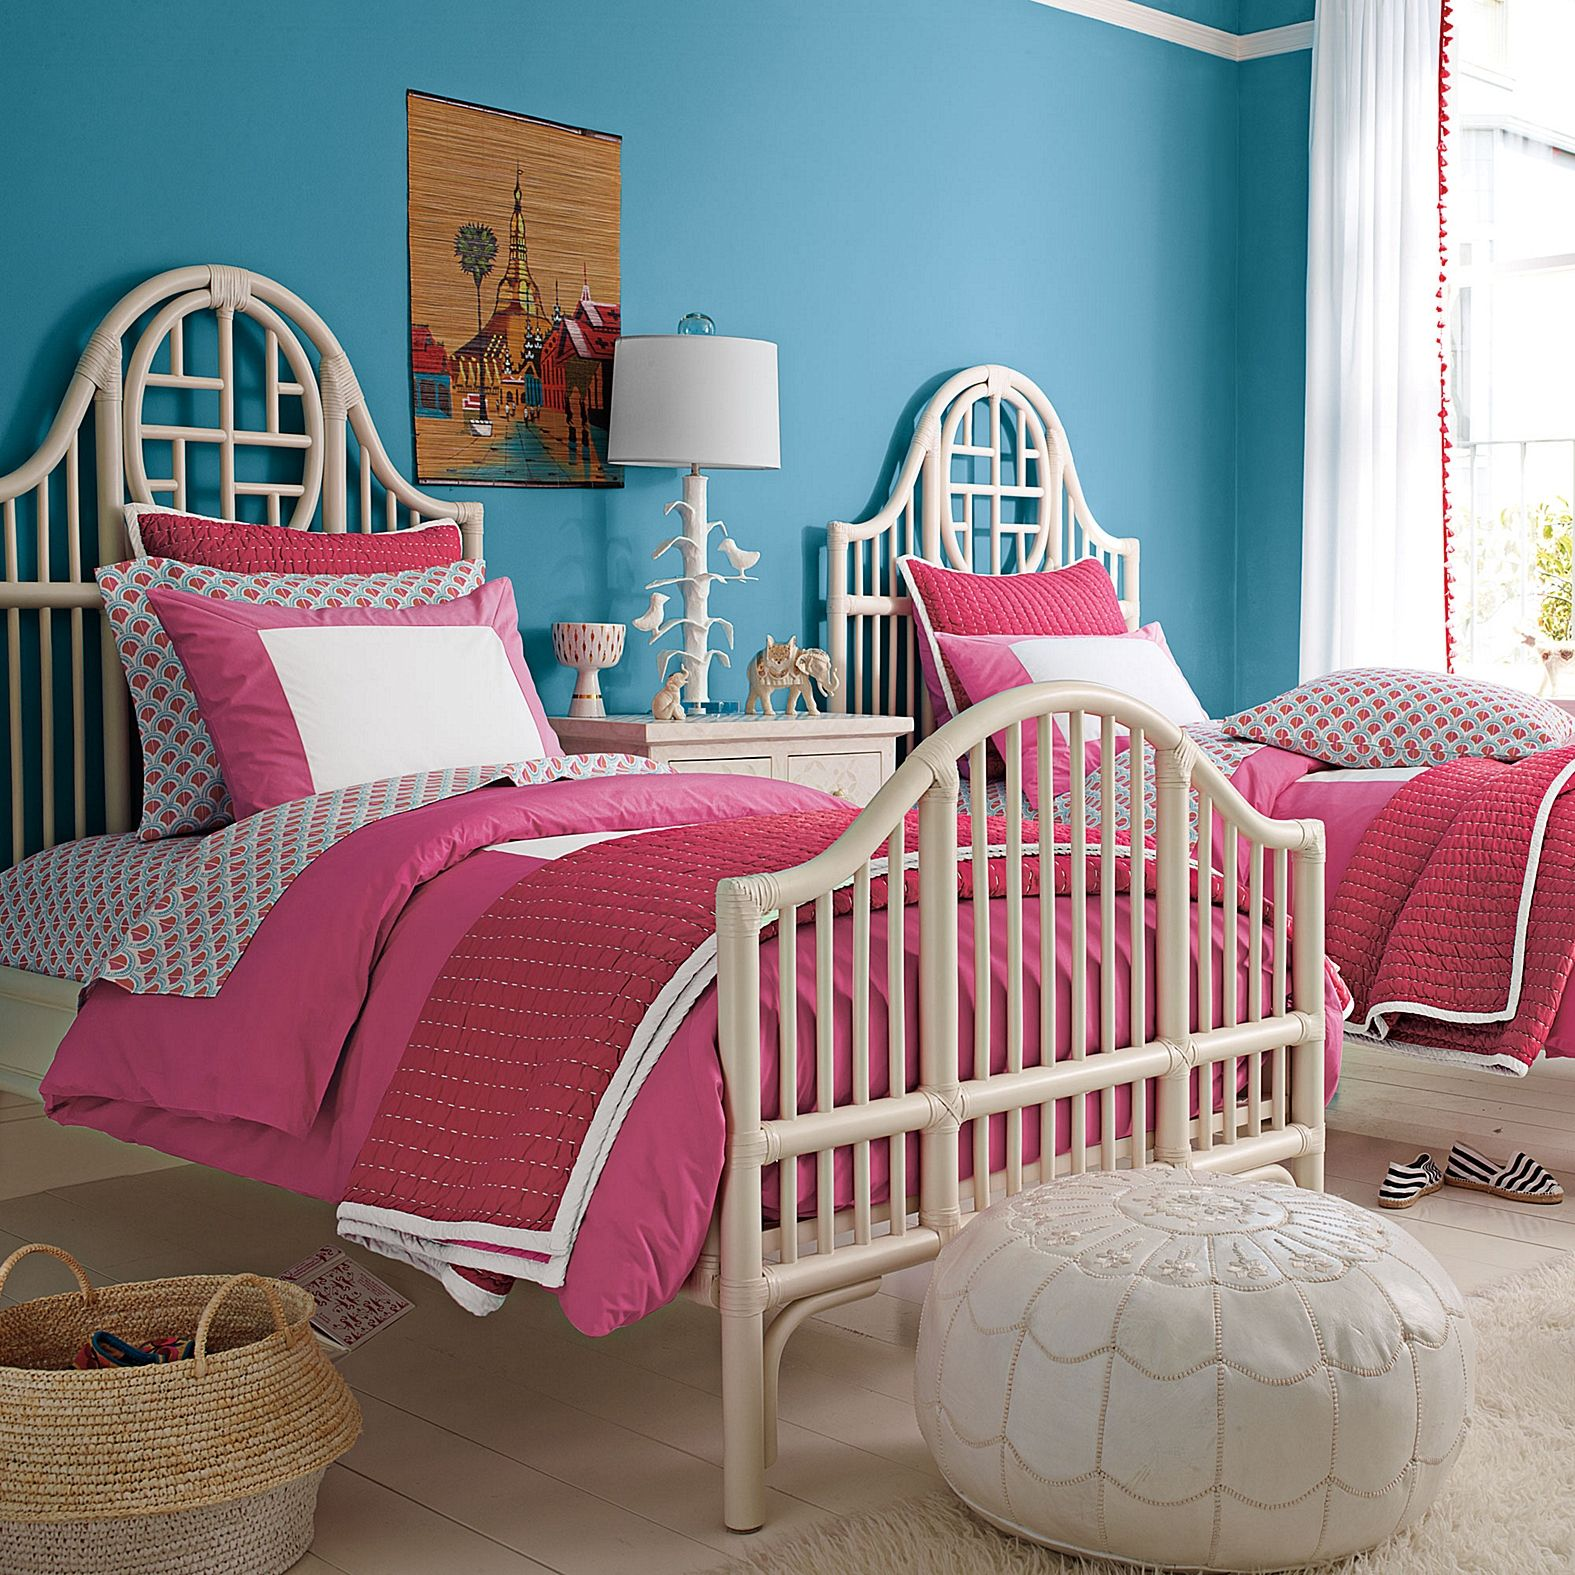 Big Bedroom: Twins? Or An Extra Guest Bedroom, For Nieces And Nephews